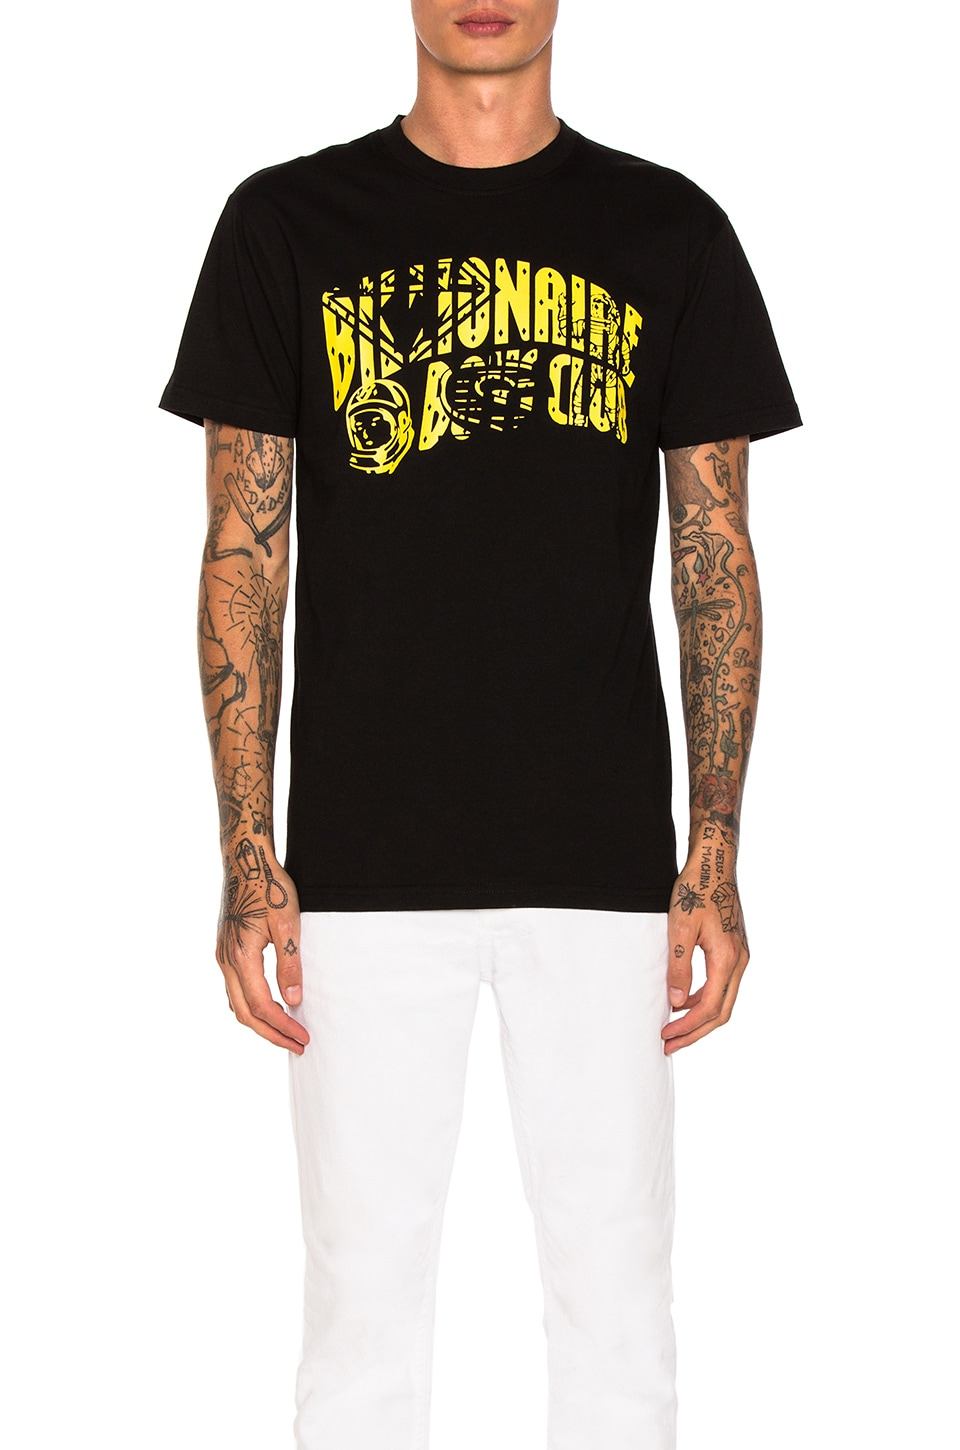 Arch Logo Tee by Billionaire Boys Club